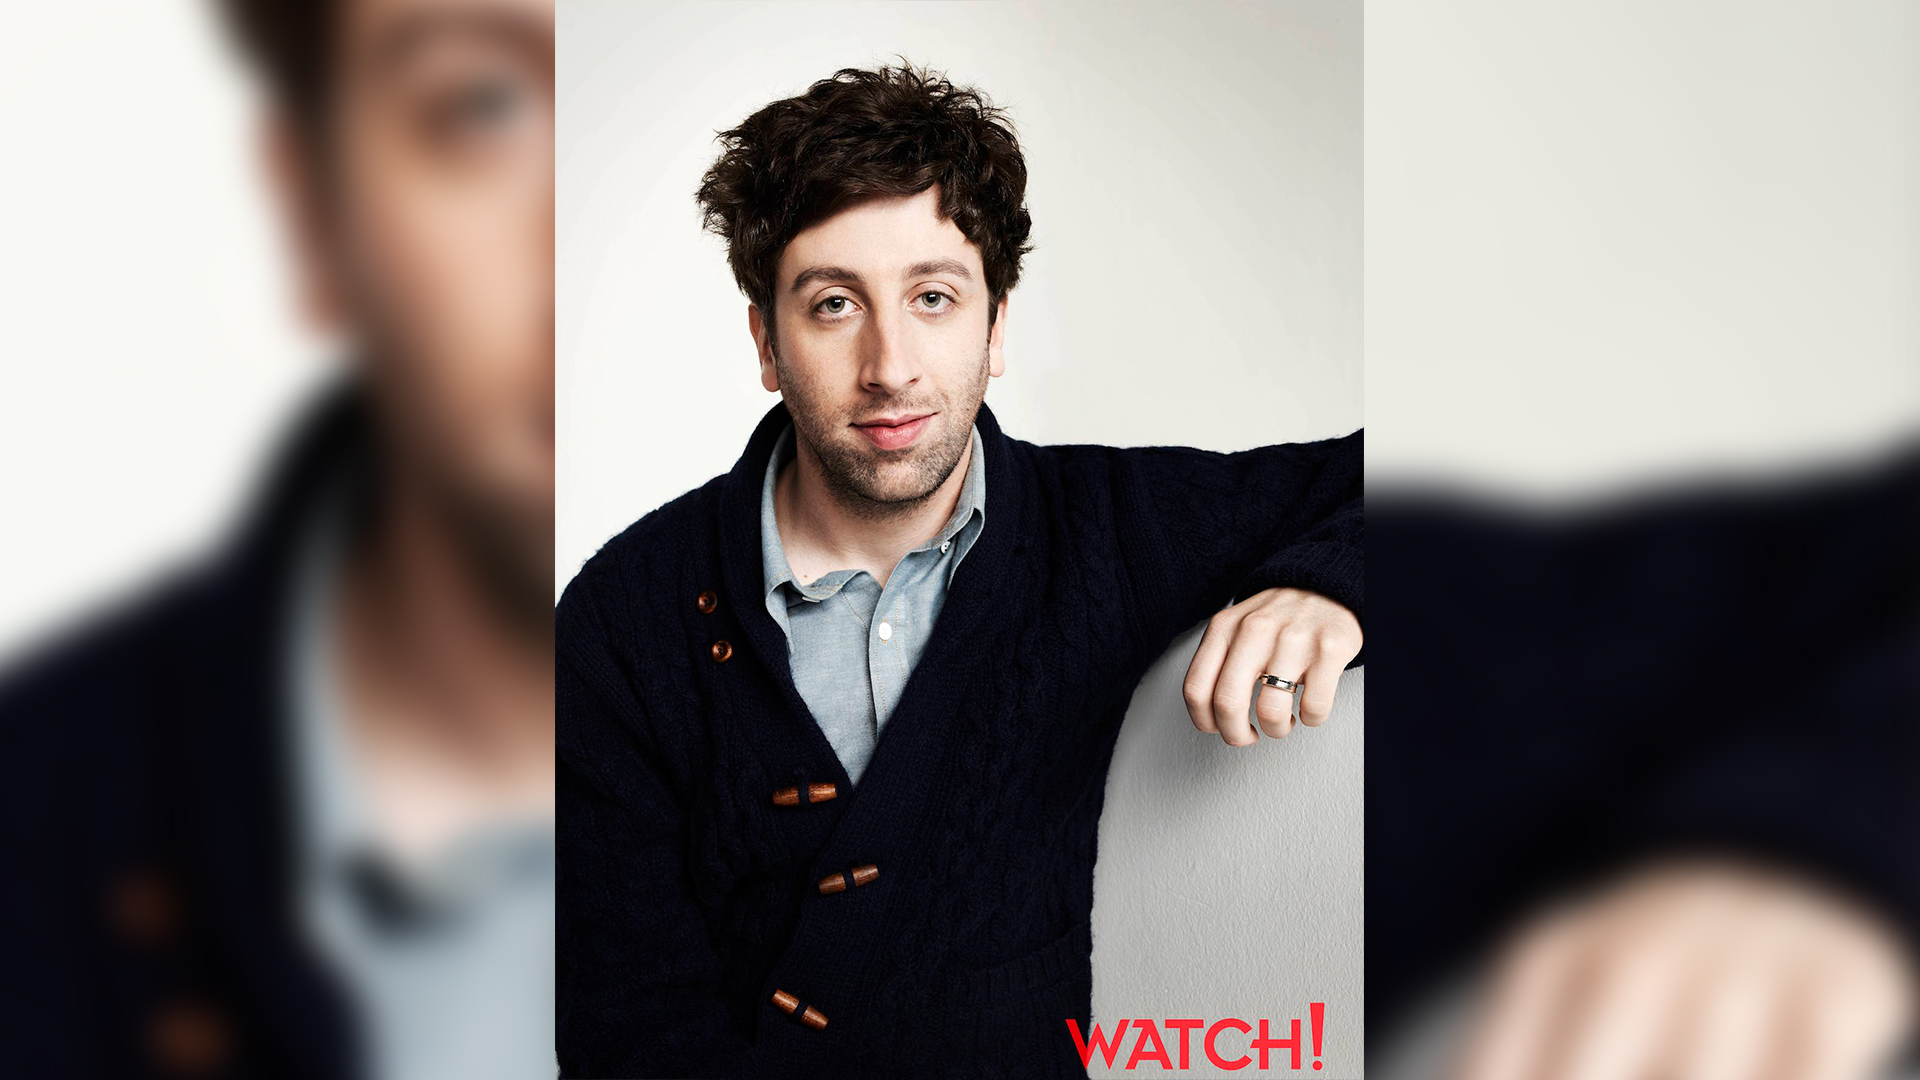 Looking good, Simon Helberg!